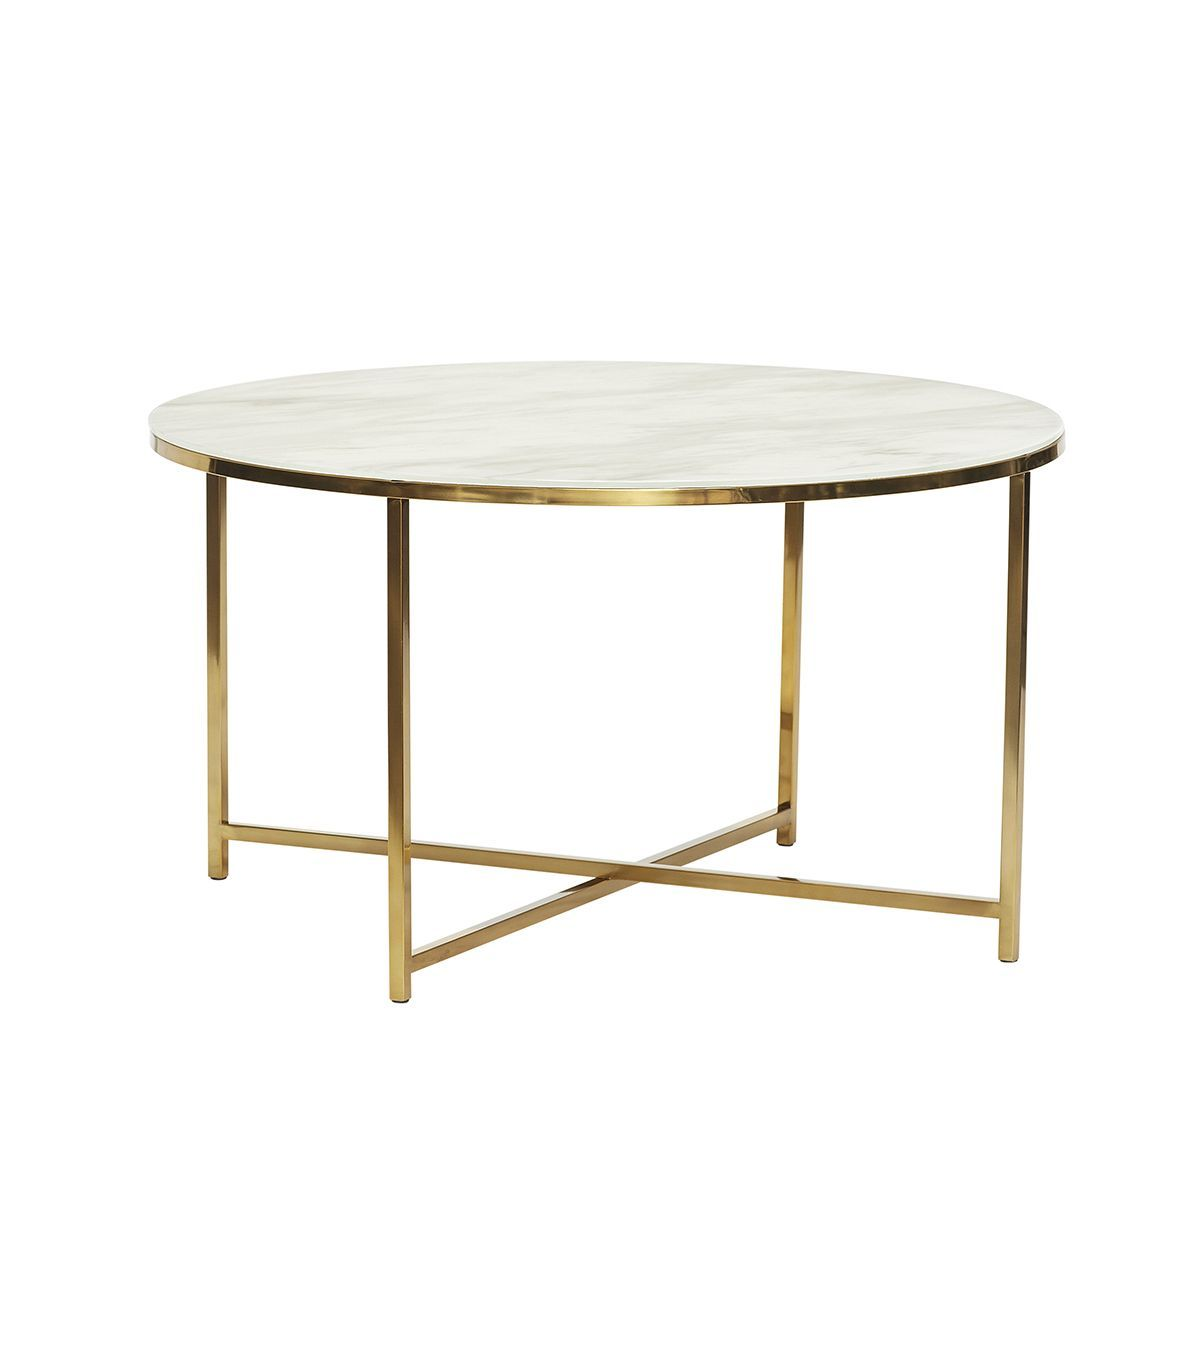 Table Basse Blanche Laiton Hubsch Table Basse Marbre Table Basse Ronde Table Basse Marbre Blanc